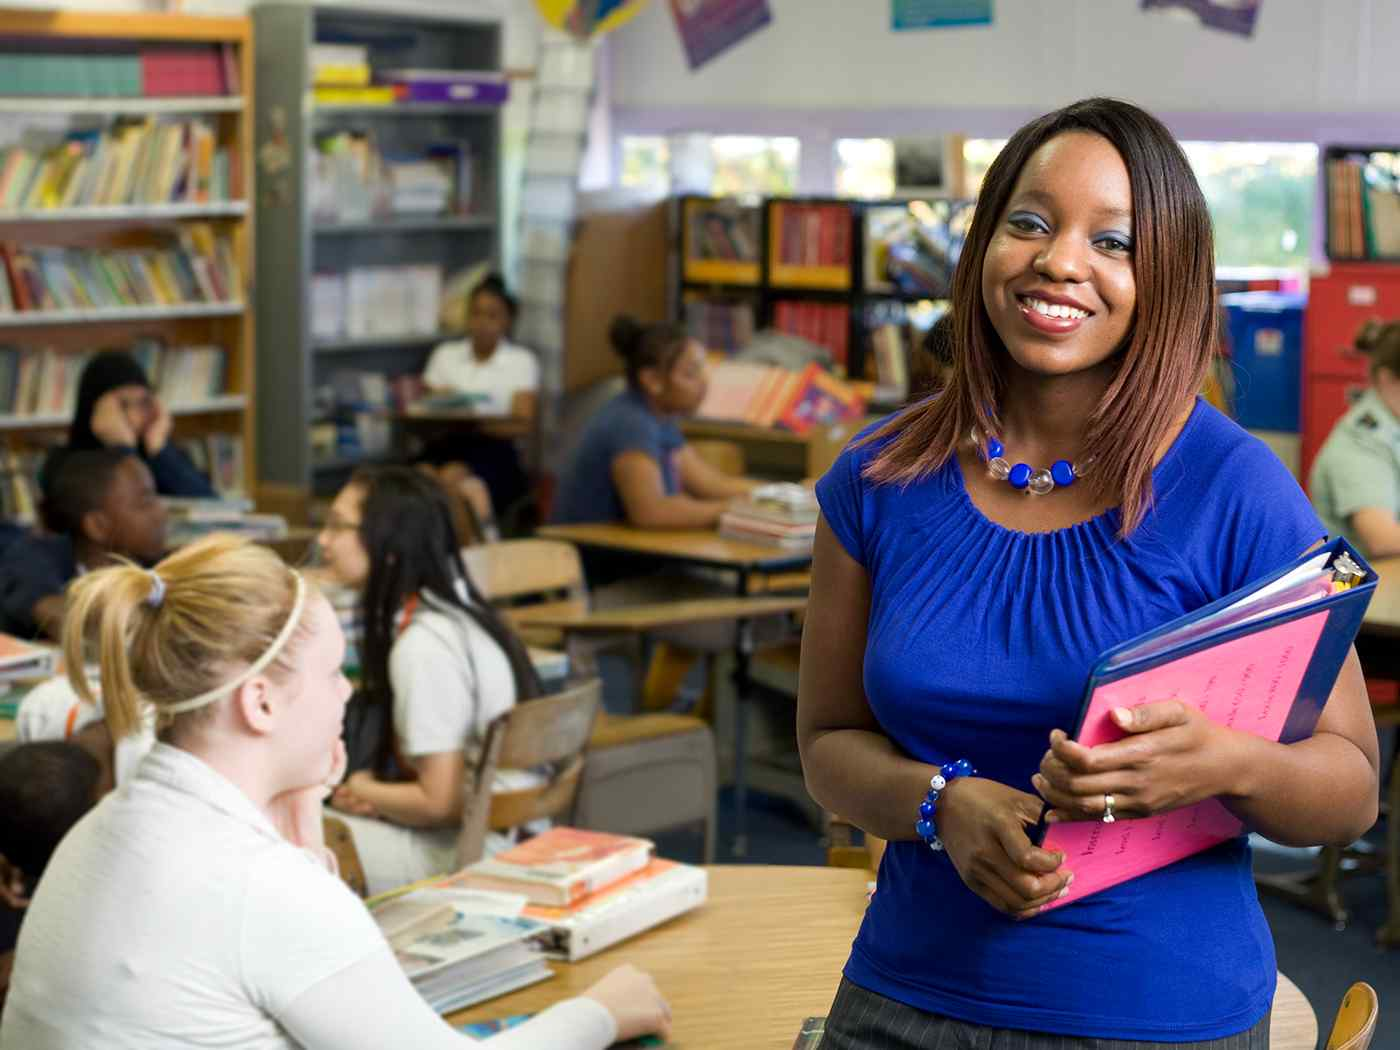 Female student teacher in middle school classroom.